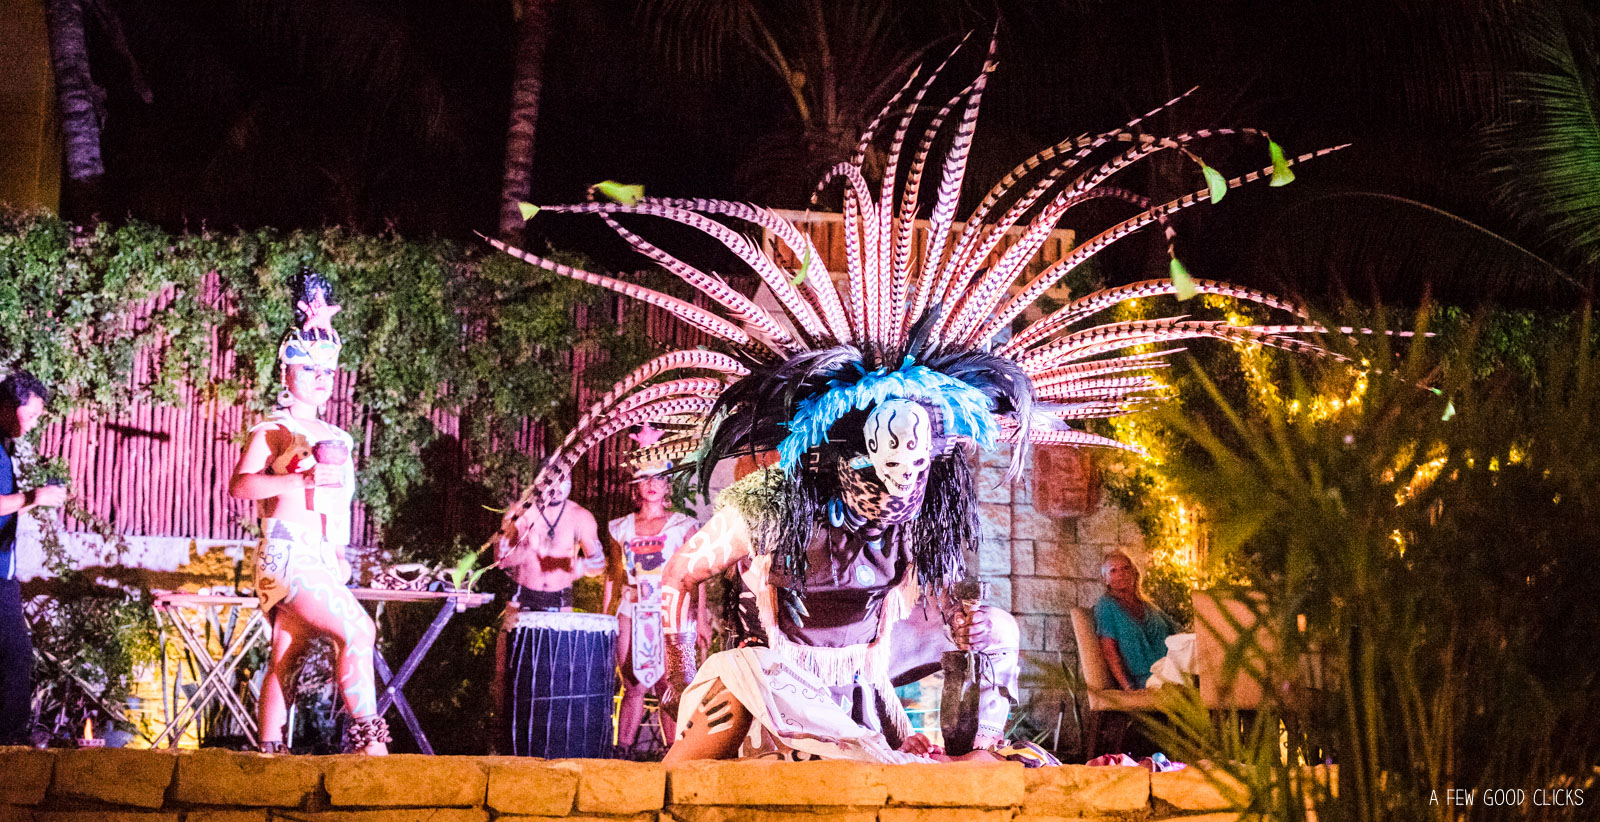 The Sacrifice |   Bay Area based restaurant photographer A Few Good Clicks captures the sacrifice during Mayan show